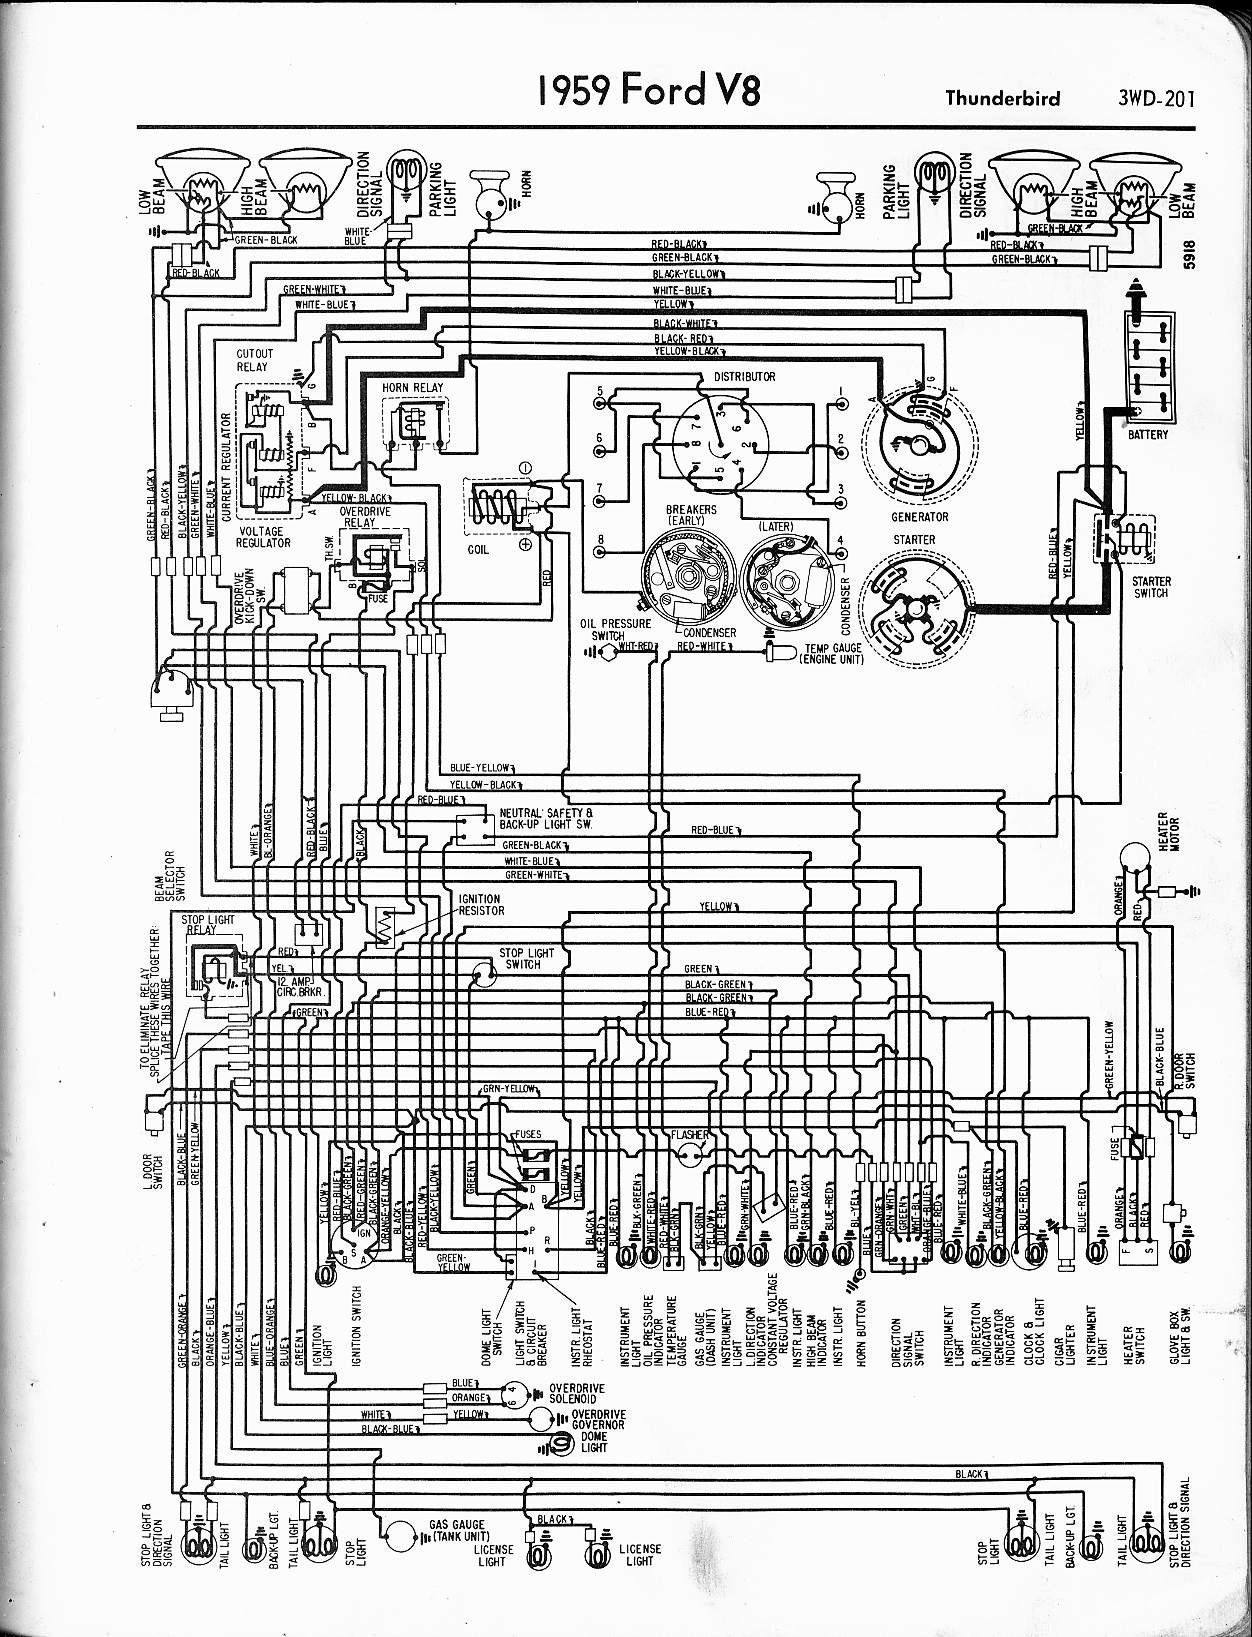 68 Torino Wiring Diagram And Schematics 1970 Ford Ignition For Best Site Harness 71 Gt